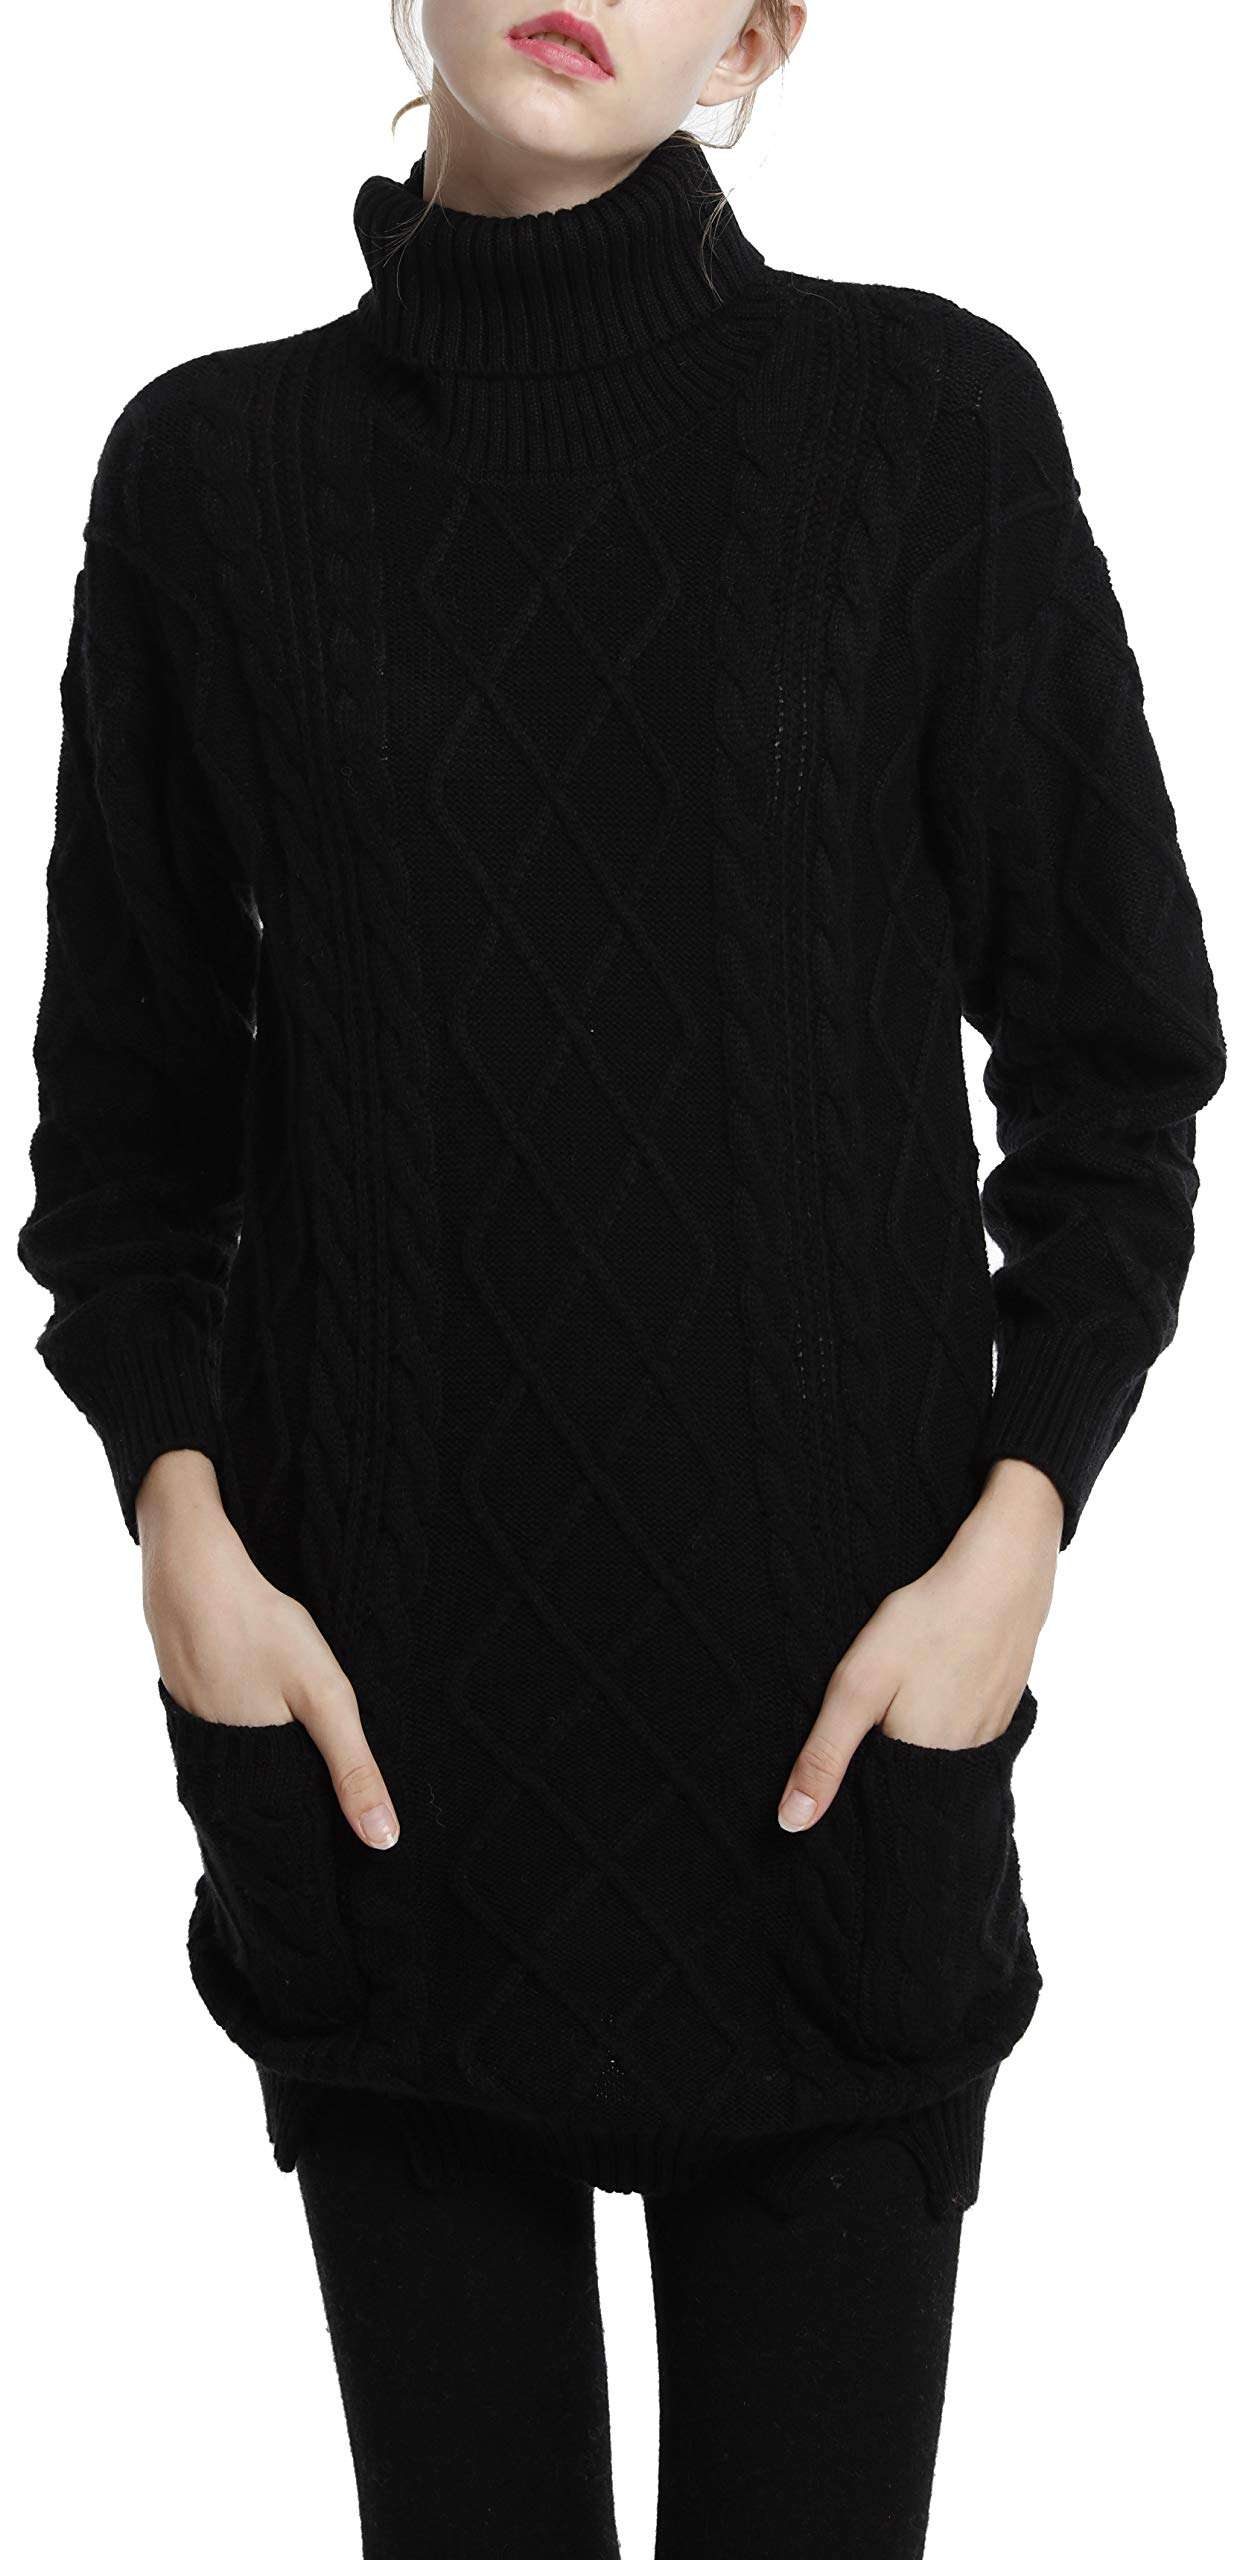 LongMing Women's Cashmere Wool Knitted Turtleneck Long Sleeve Winter Pullover Long Sweater Dresses Tops